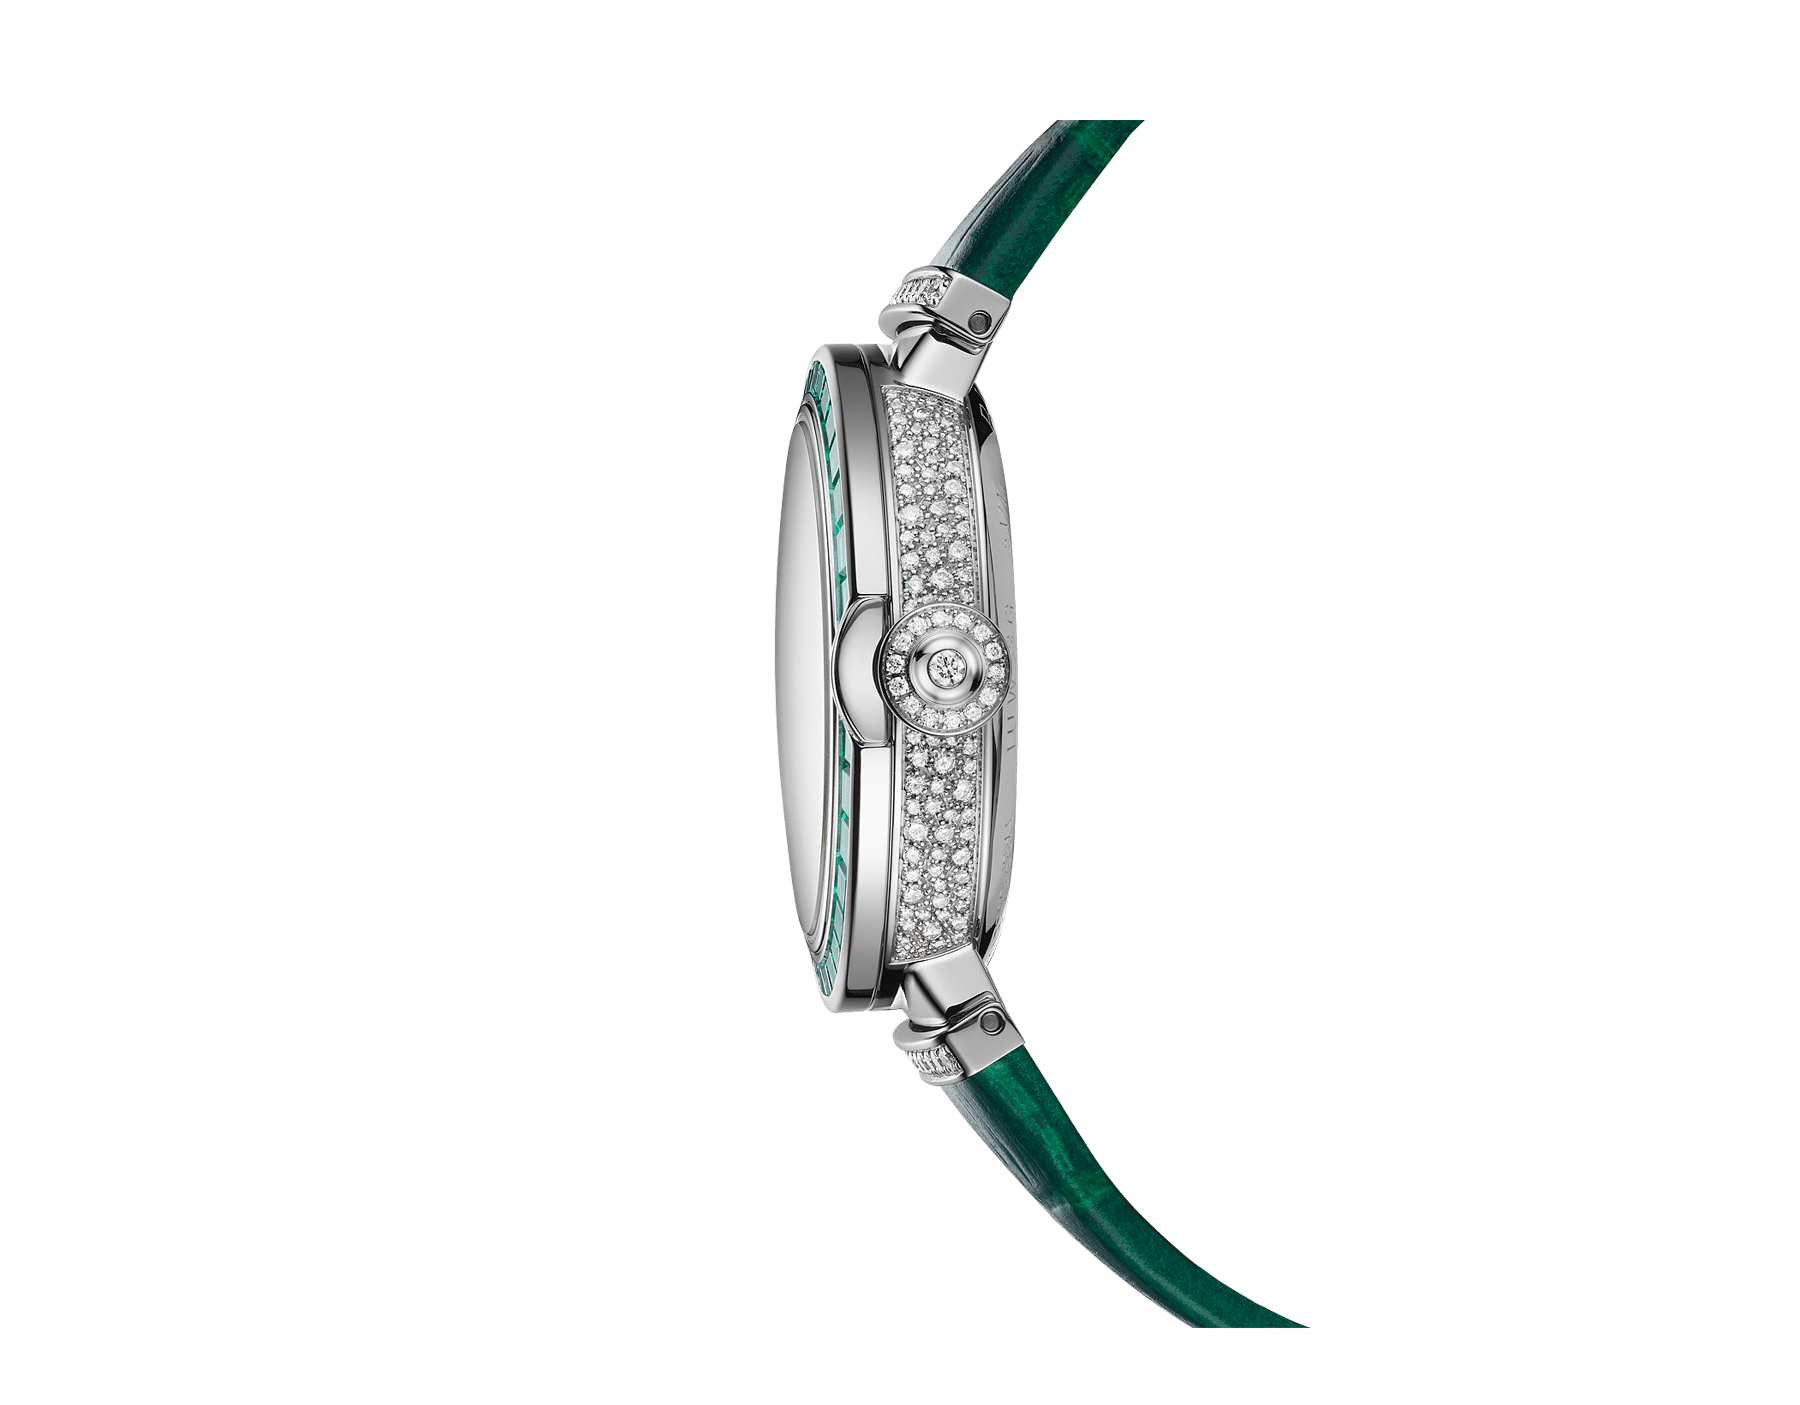 LVCEA Skeleton watch with mechanical movement, automatic winding, 18 kt white gold case set with baguette-cut emeralds, 18 kt white gold openwork BVLGARI logo dial set with brilliant-cut diamonds, green alligator bracelet and 18 kt white gold links set with brilliant-cut diamonds 103033 image 3